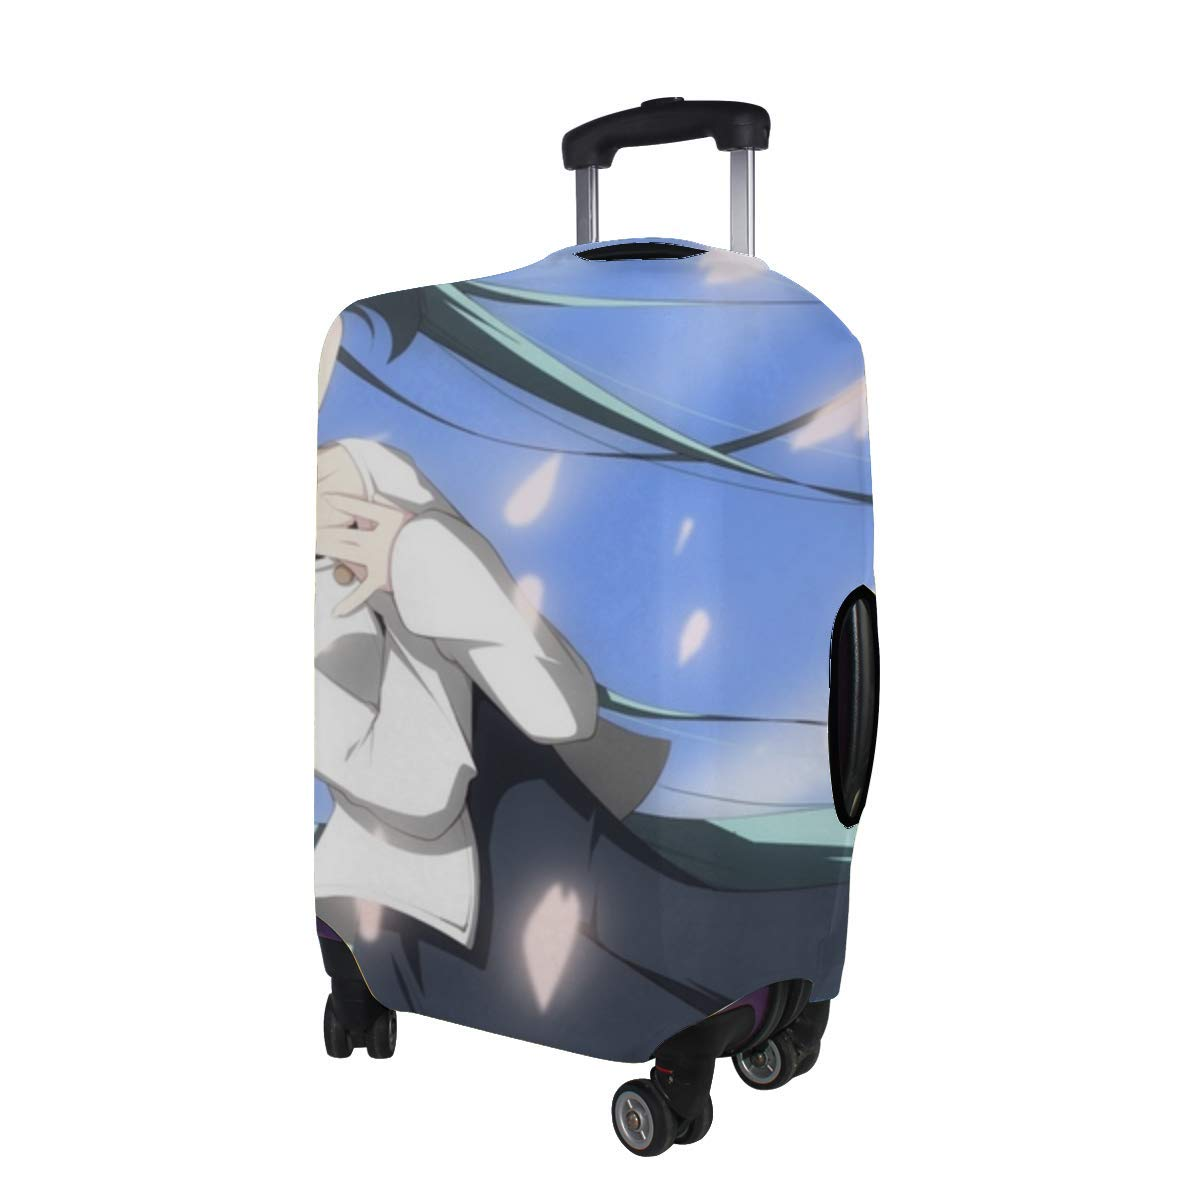 Maxm Vocaloid Hatsune Miku Girl Sky Long Hair Pattern Print Travel Luggage Protector Baggage Suitcase Cover Fits 18-21 Inch Luggage